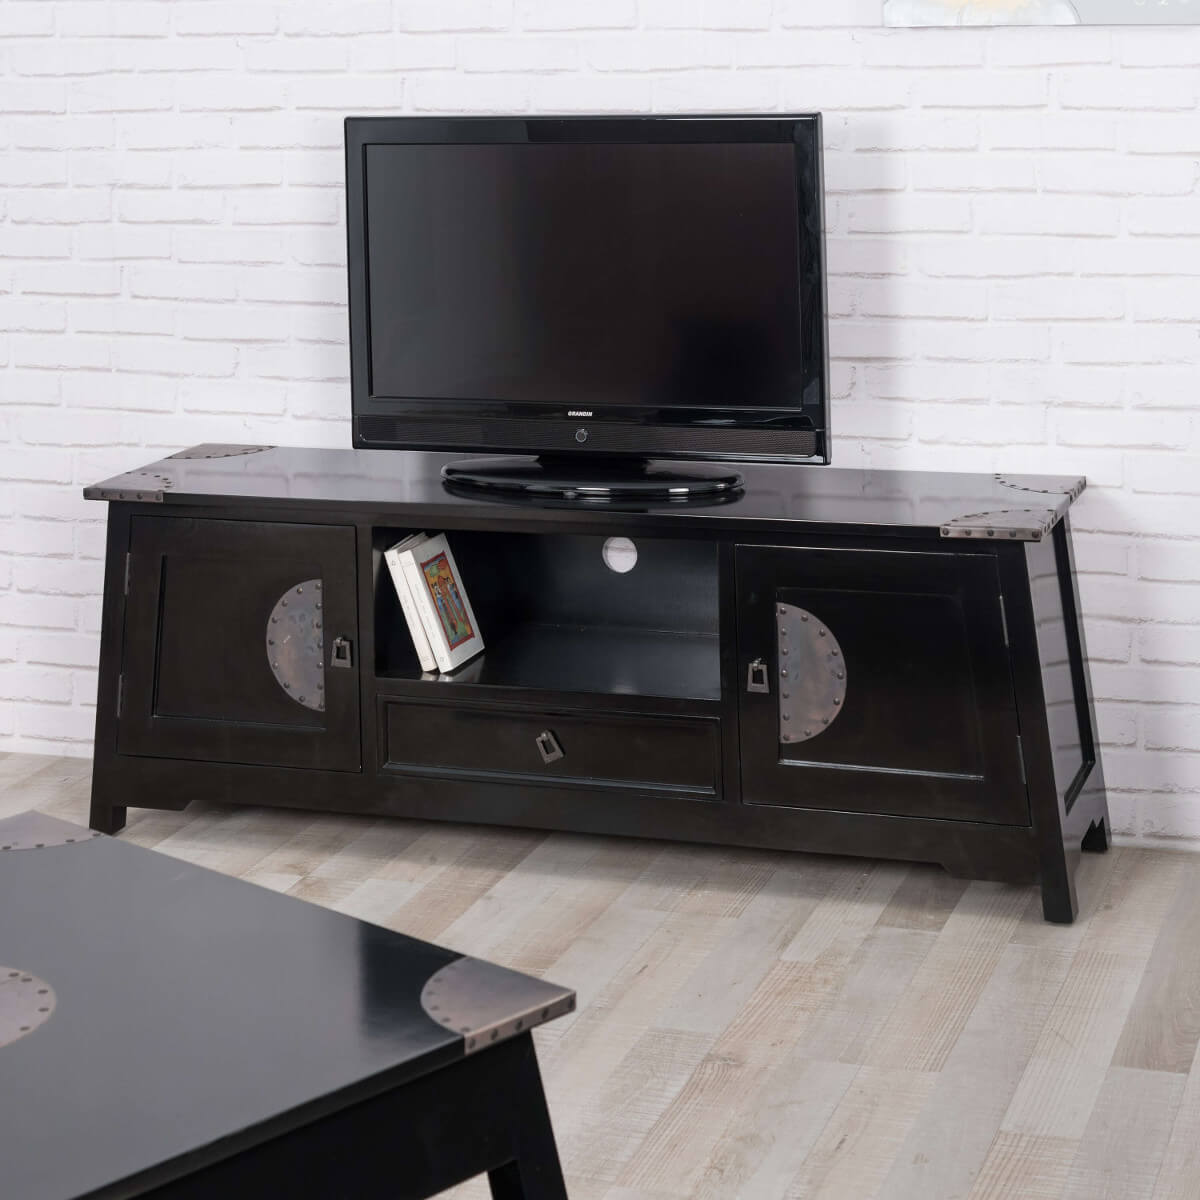 meuble tv noir meuble tv bois metal rectangle acajou. Black Bedroom Furniture Sets. Home Design Ideas